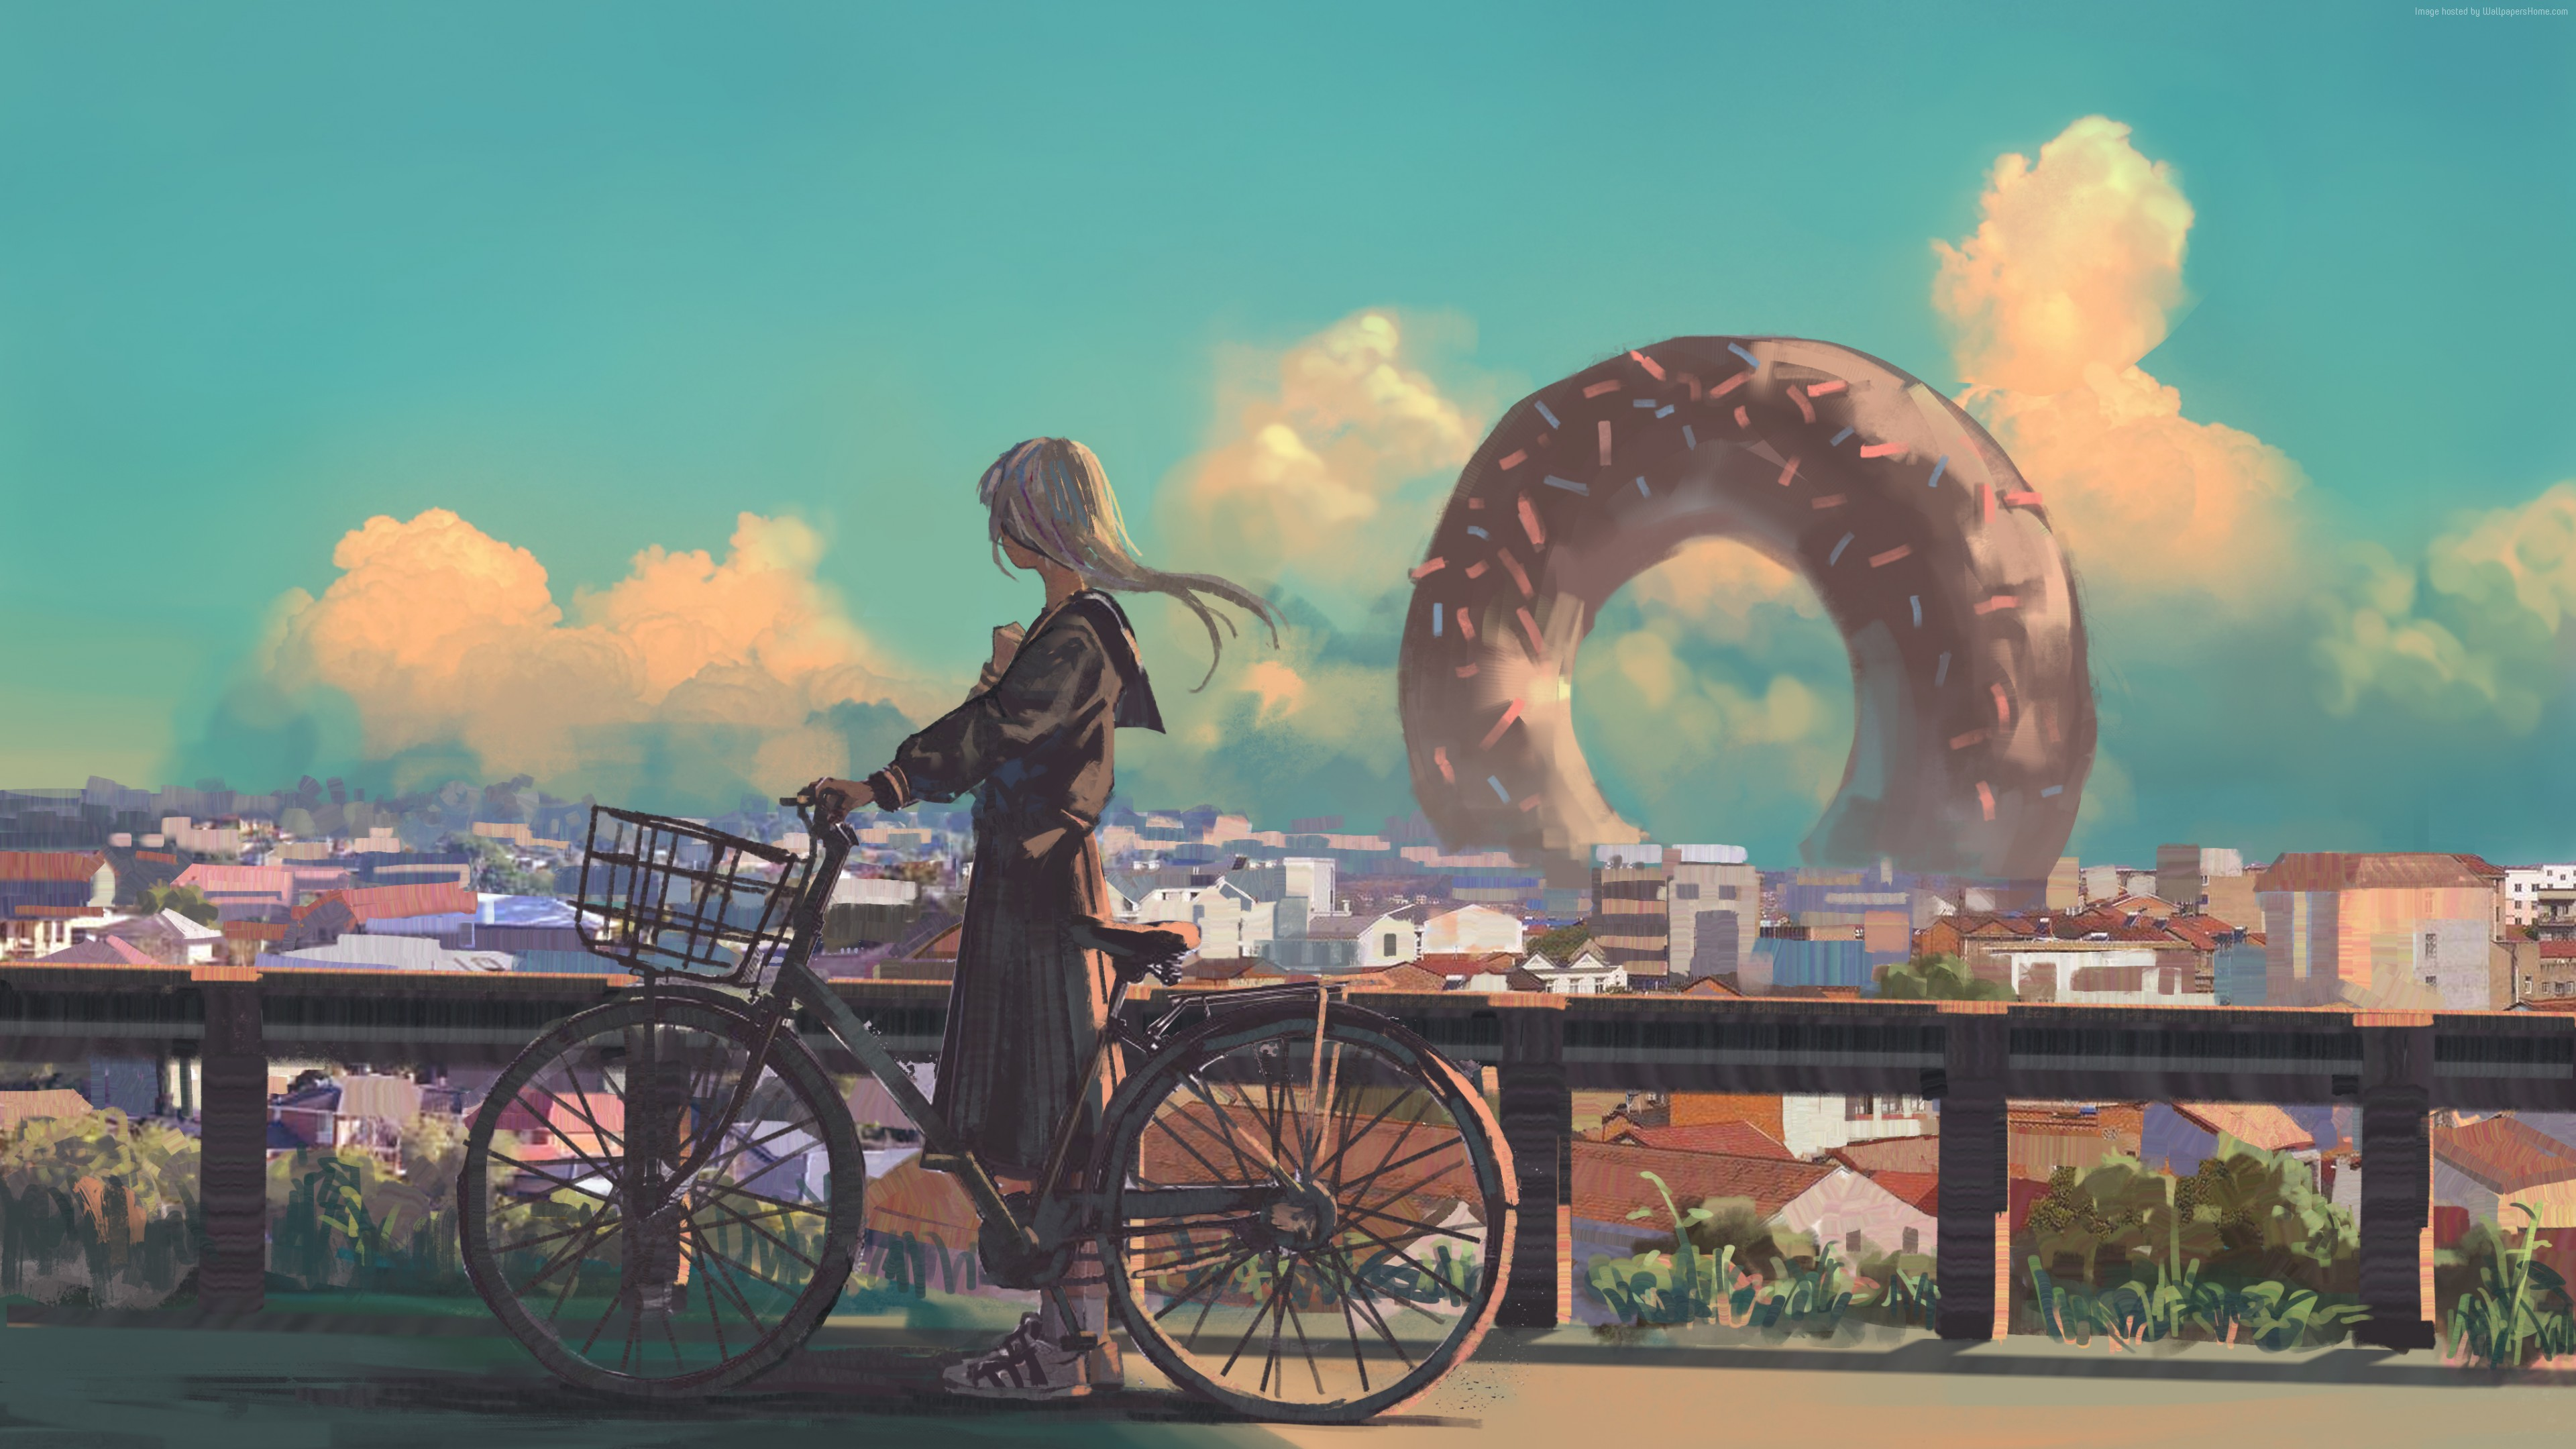 Wallpaper girl, bicycle, city, 4K, Art